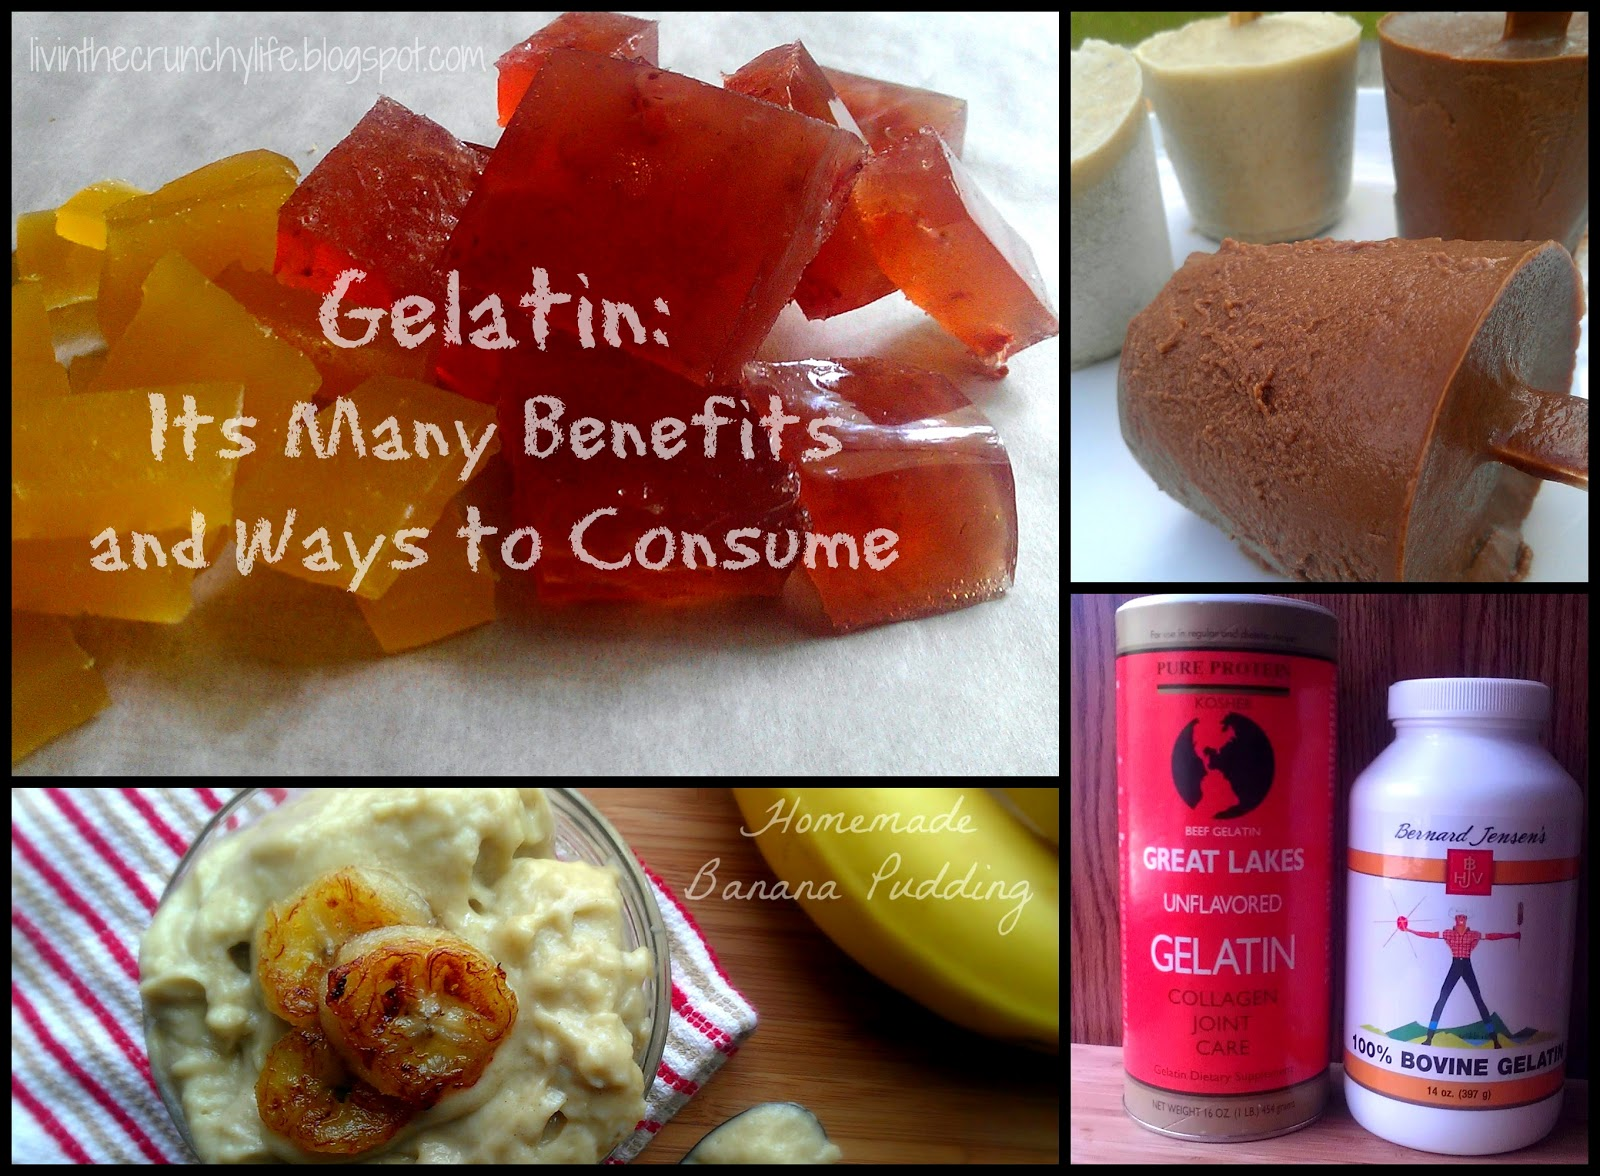 Gelatin: Its Many Benefits and Ways to Consume